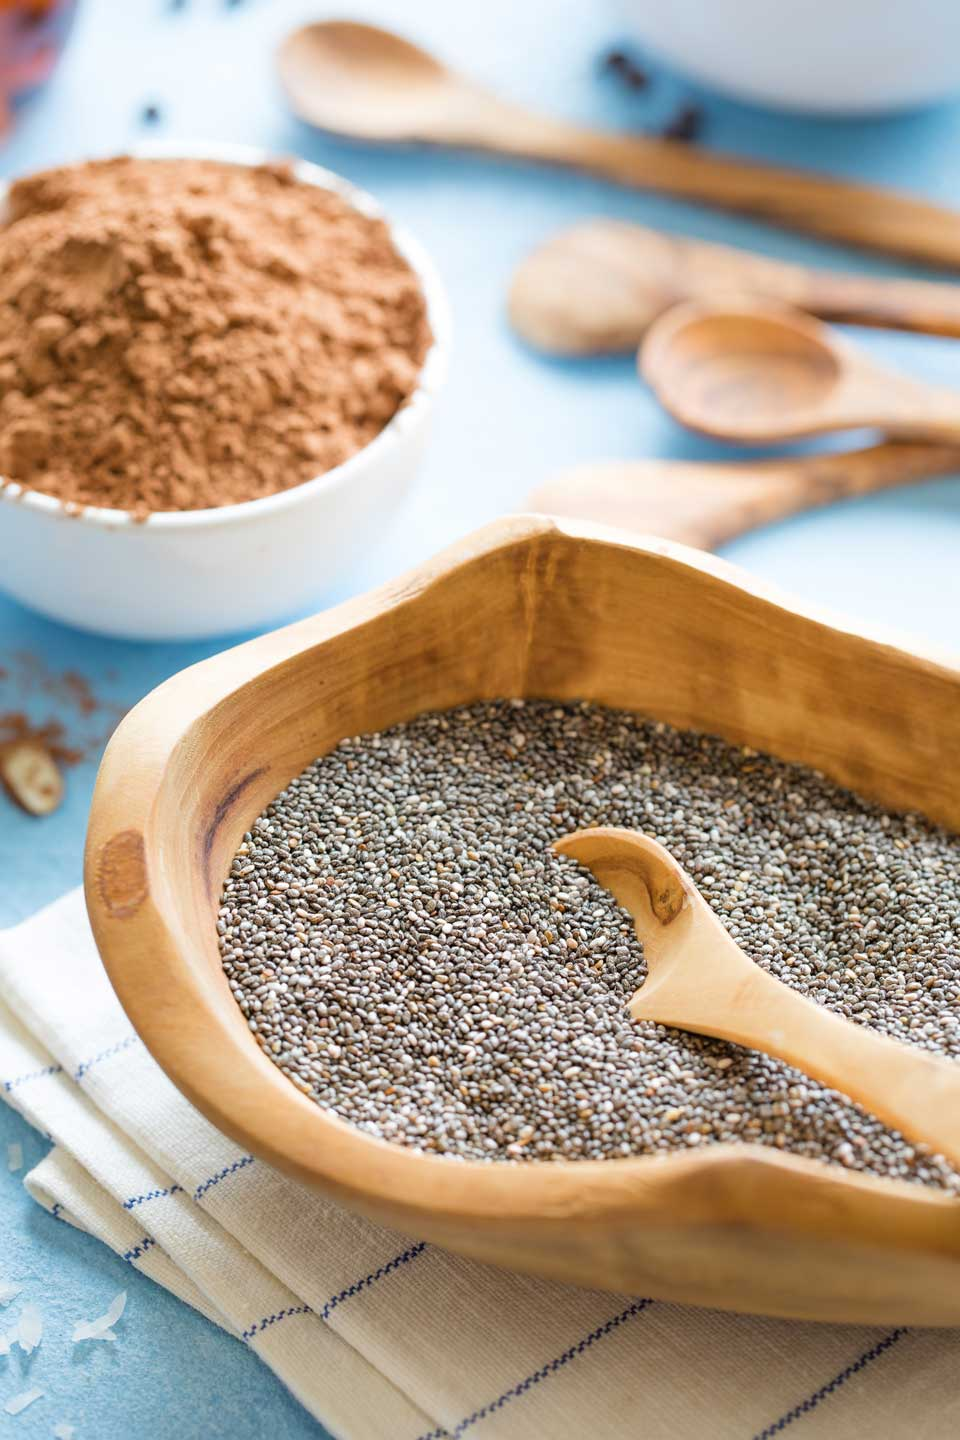 Closeup of a wooden bowl filled with chia seeds, with a white bowl of cocoa powder and wooden spoons in the background.